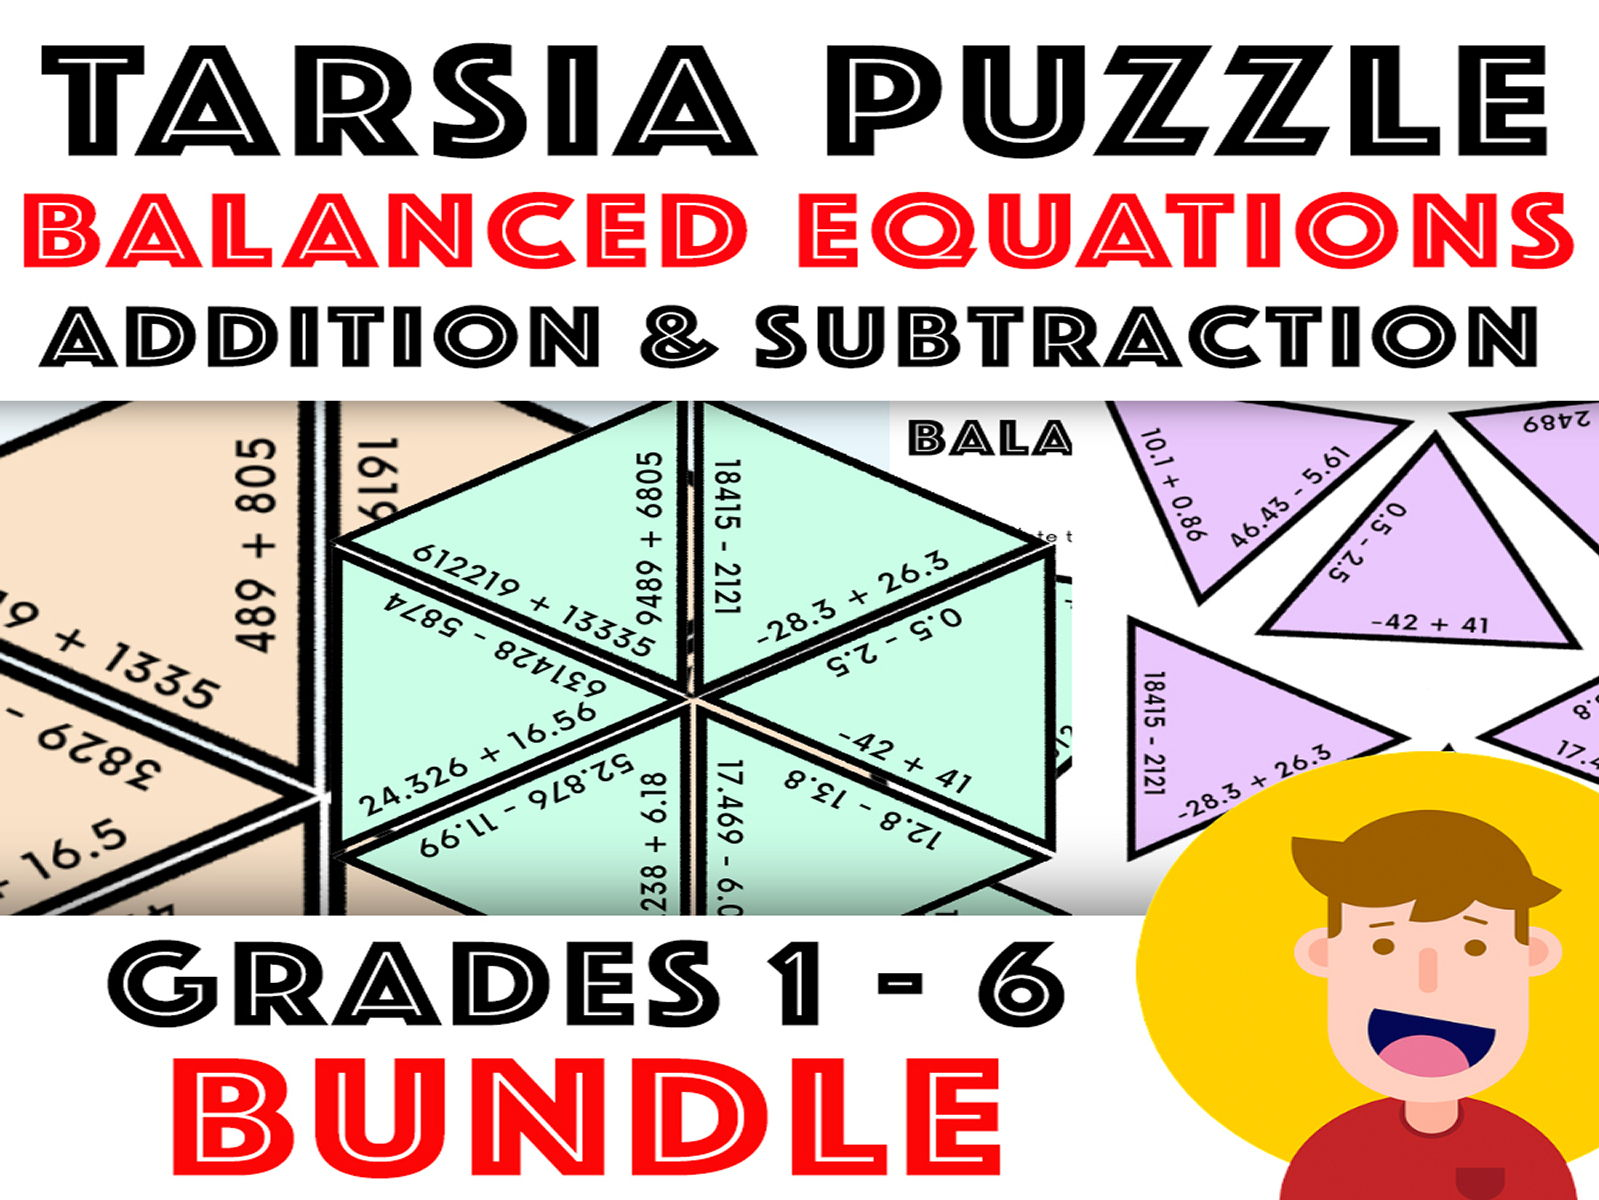 Balance The Equation Tarsia Puzzle: Addition & Subtraction - Years 2 - 6 Bundle